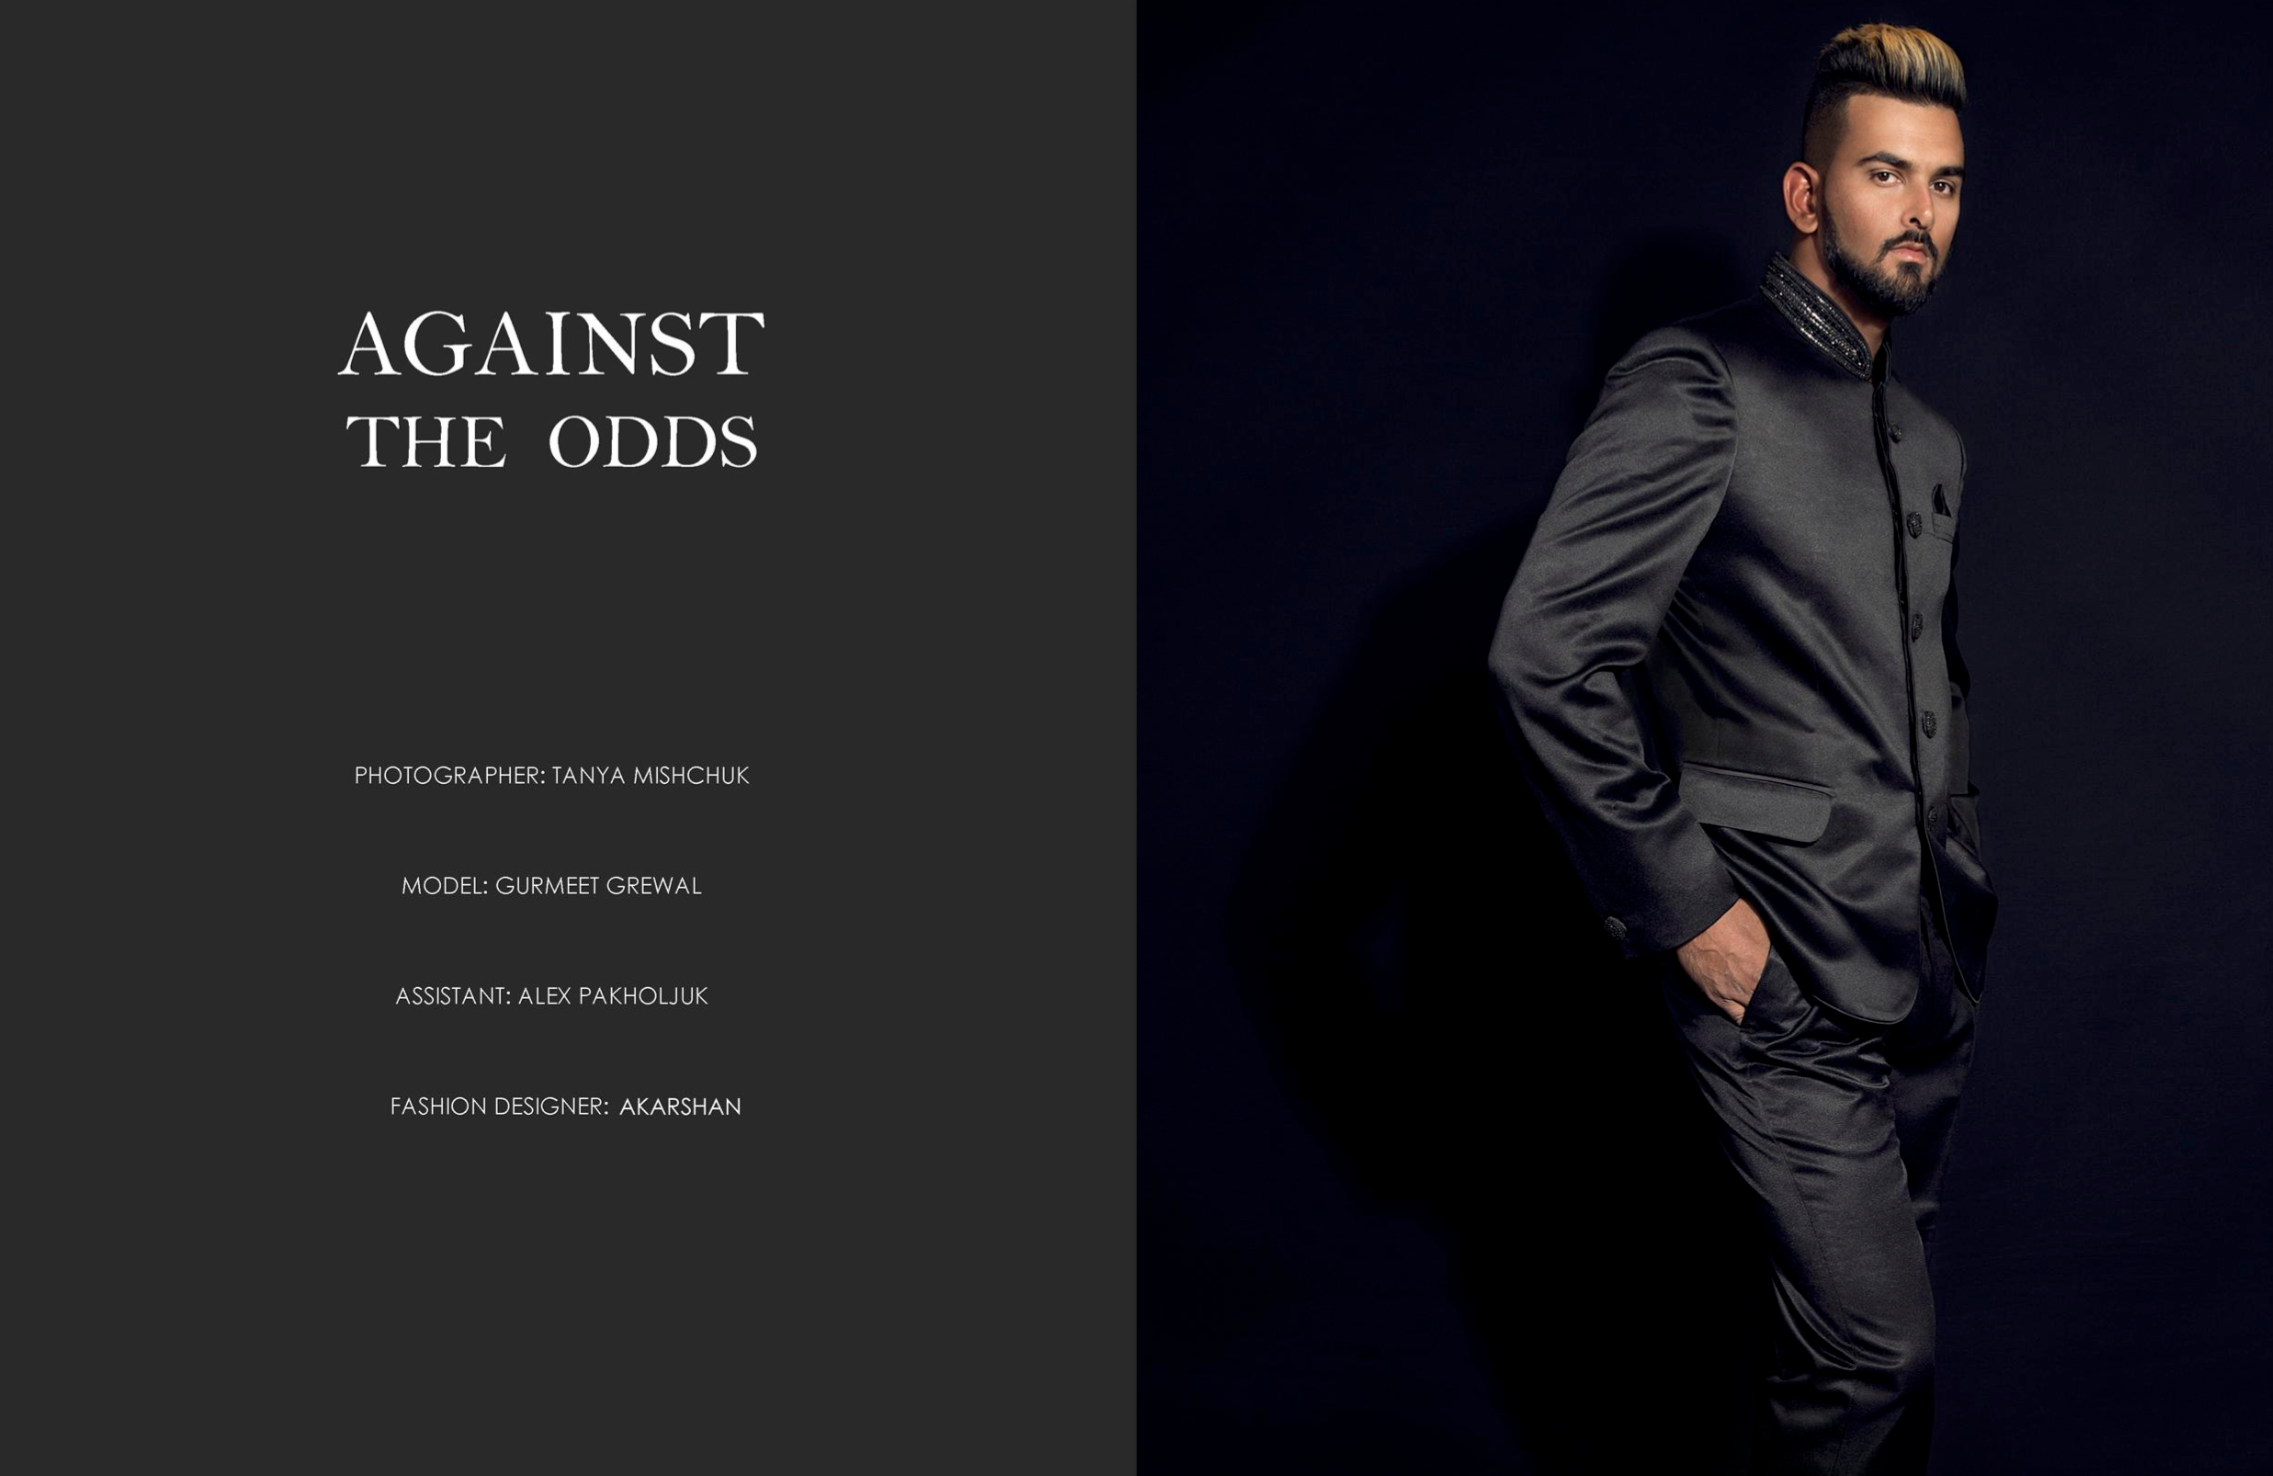 AGAINST THE ODDS...